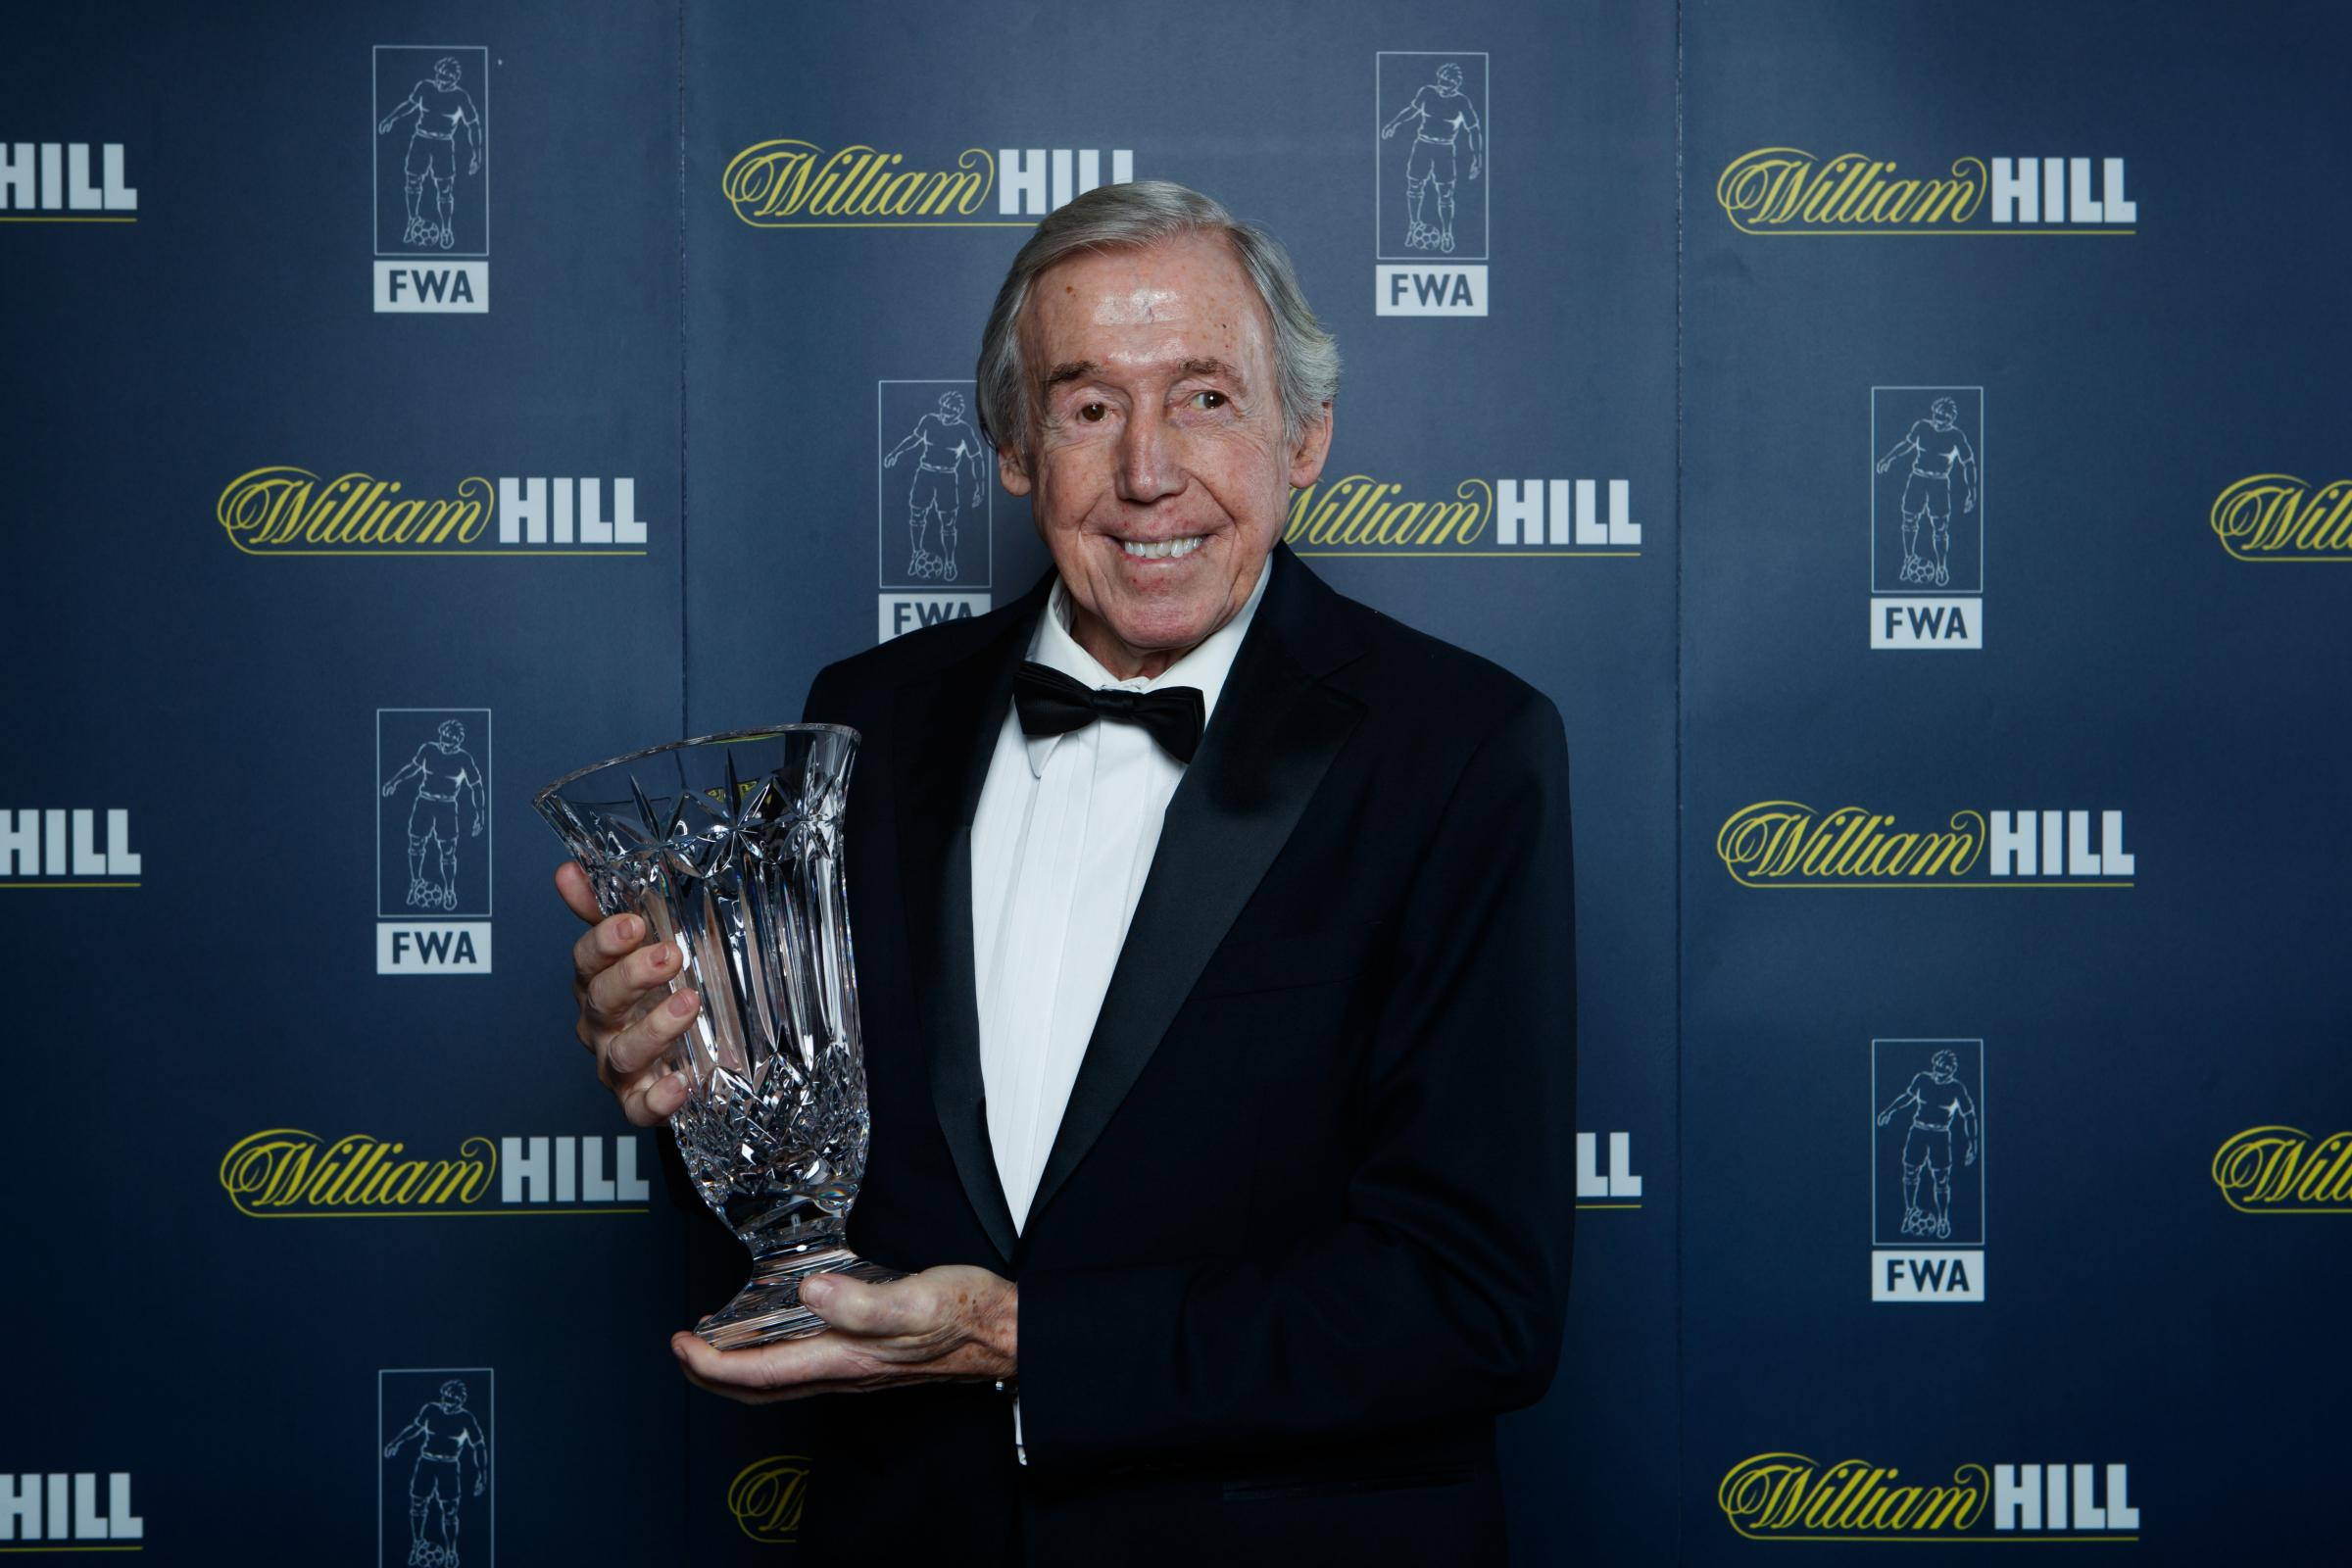 Gordon Banks made 73 appearances for England